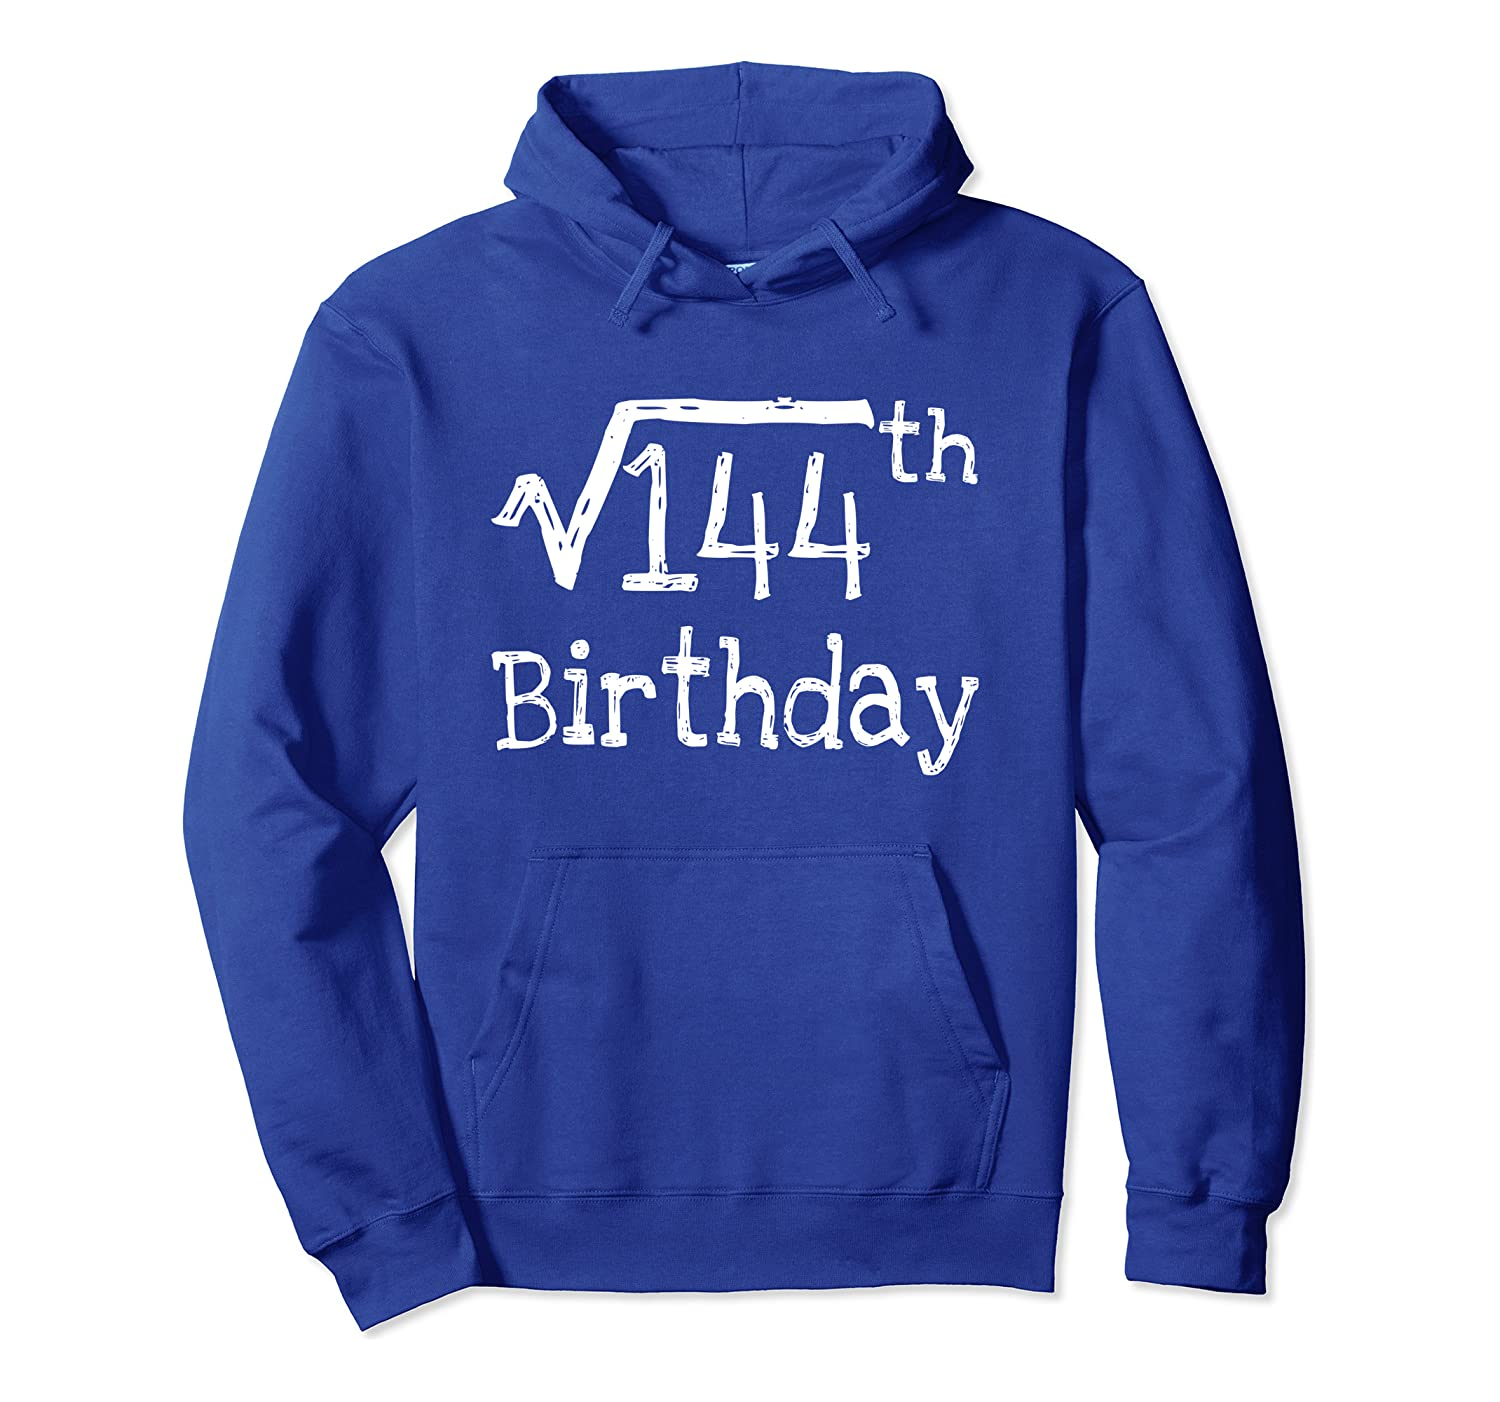 12 years old gift Square Root of 144 Math 12th birthday kids Pullover Hoodie